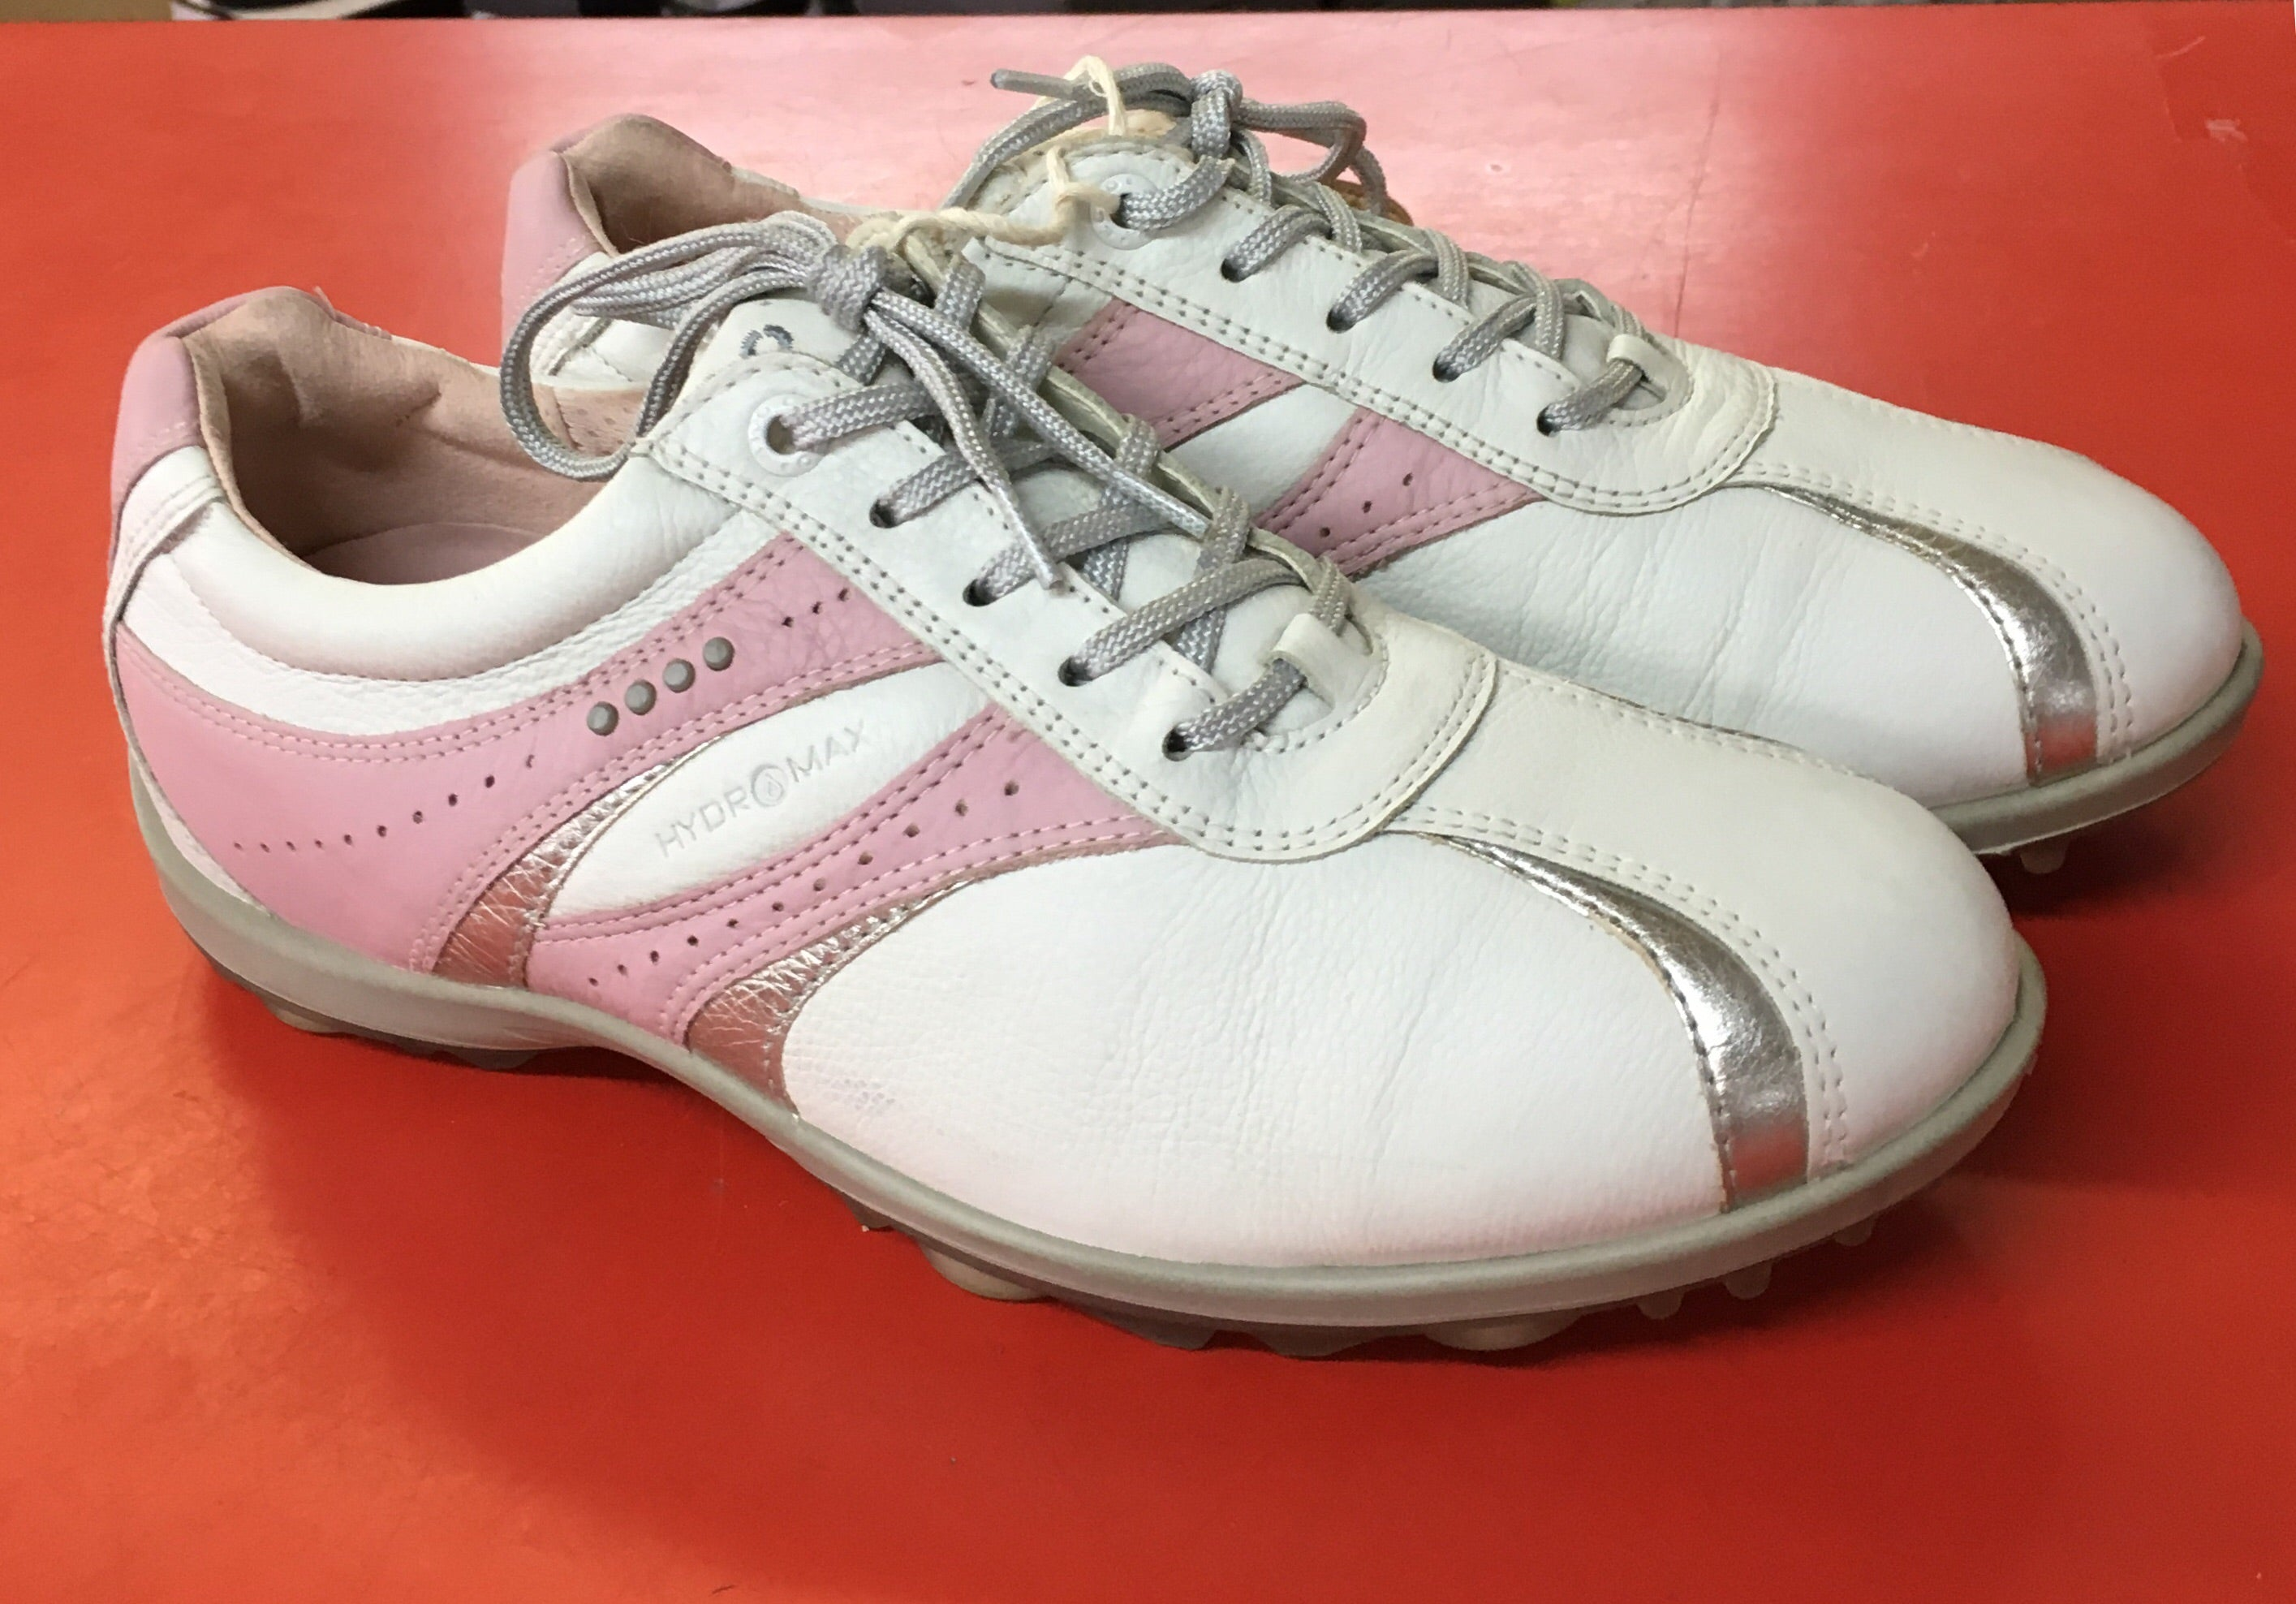 6f5f78bc441b Women s ECCO Golf Shoes SZ. 7-7.5 US EU 38 White Pink Silver Hydo~Max –  Shoodog.com